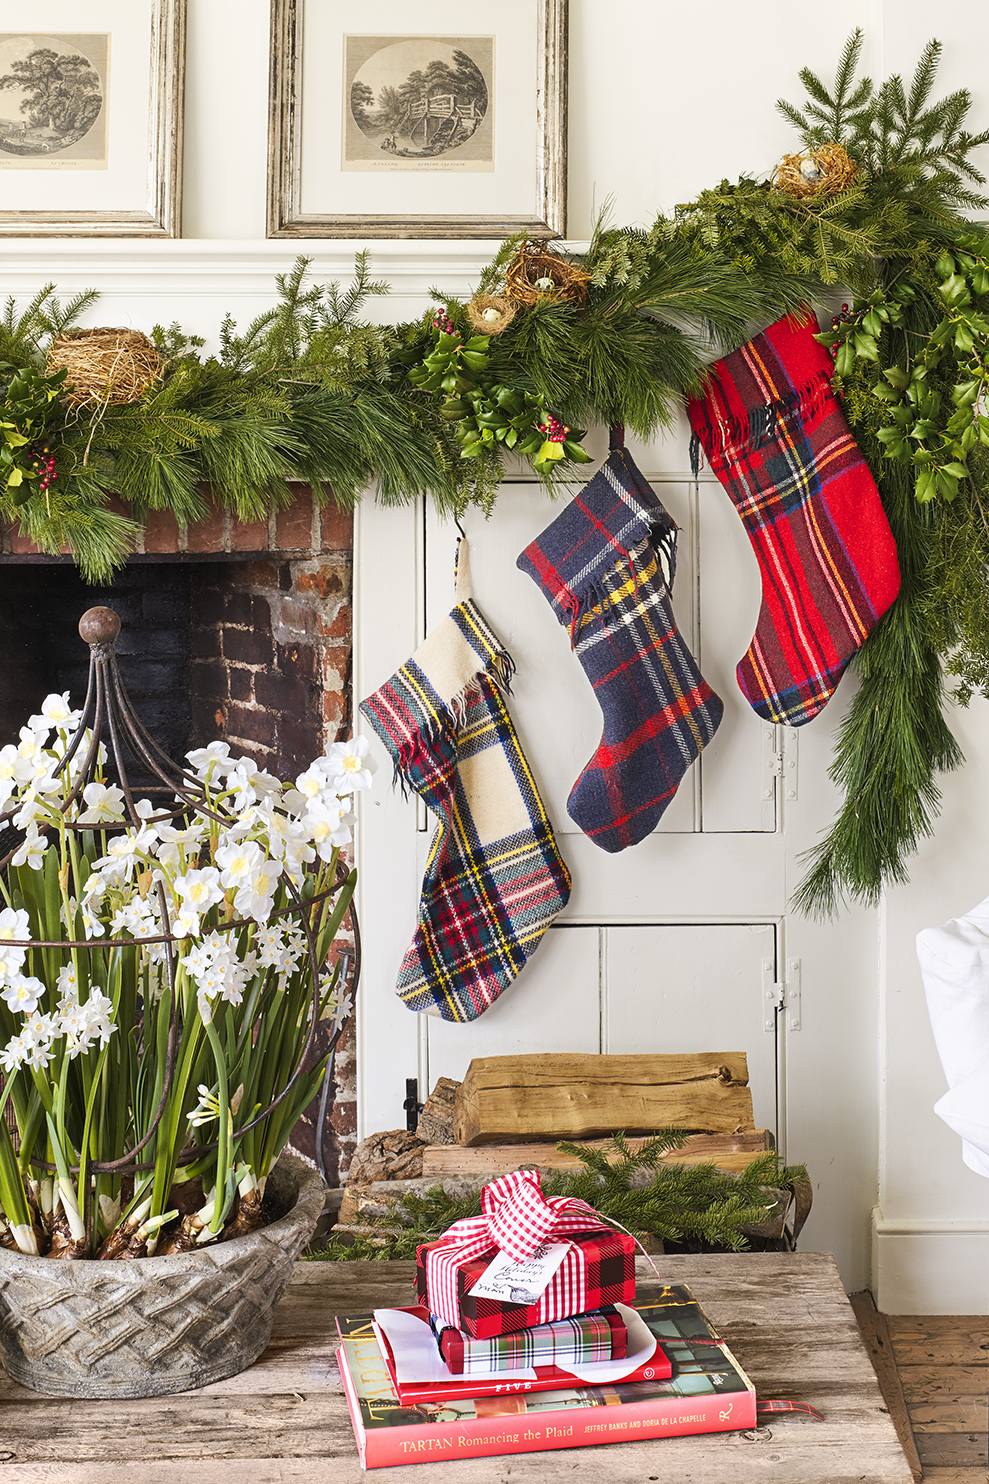 45 diy homemade christmas decorations christmas decor you can make - Tartan Plaid Christmas Decor